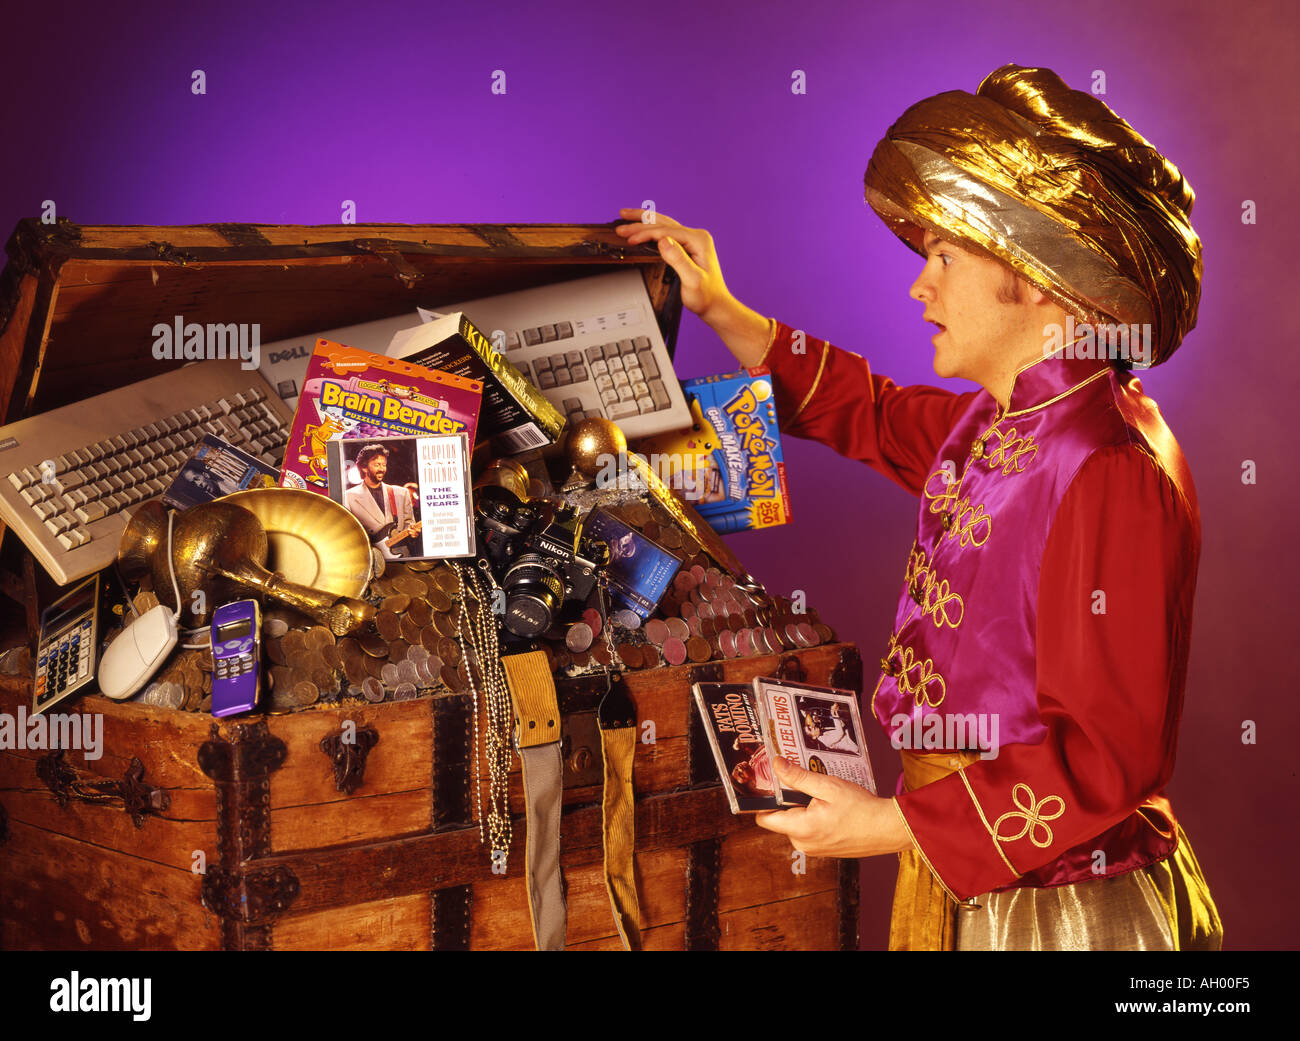 TREASURE CHEST - Stock Image